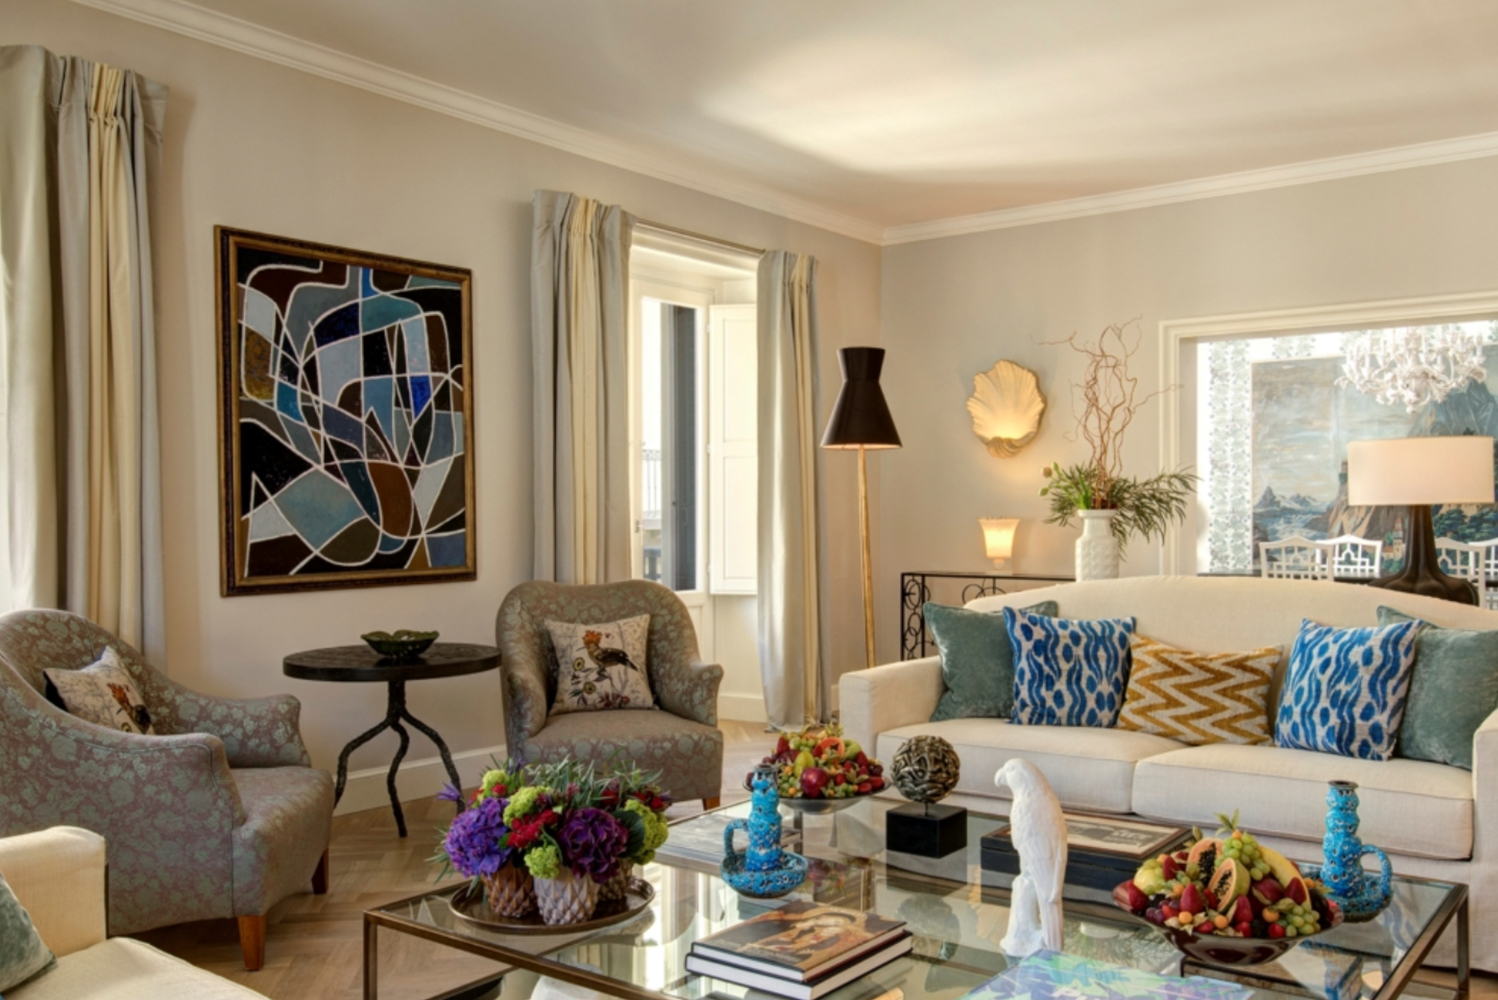 The suite was designed by Rocco Forte Hotels' design director, Olga Polizzi.